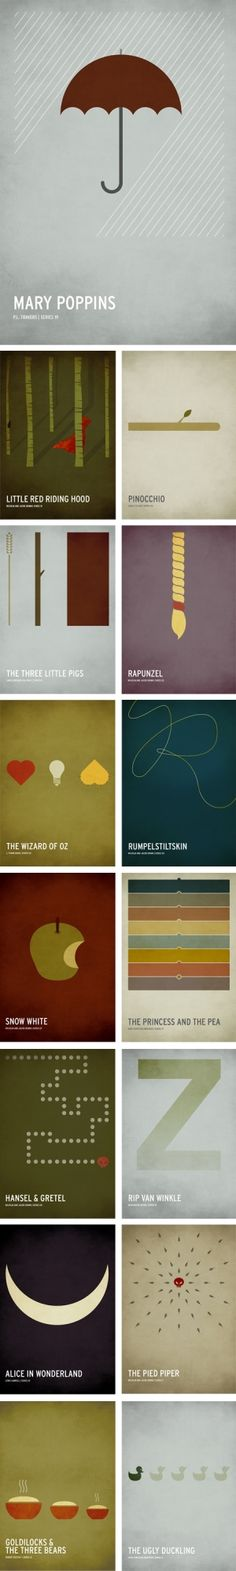 Minimalistic poster for classic kid's tales